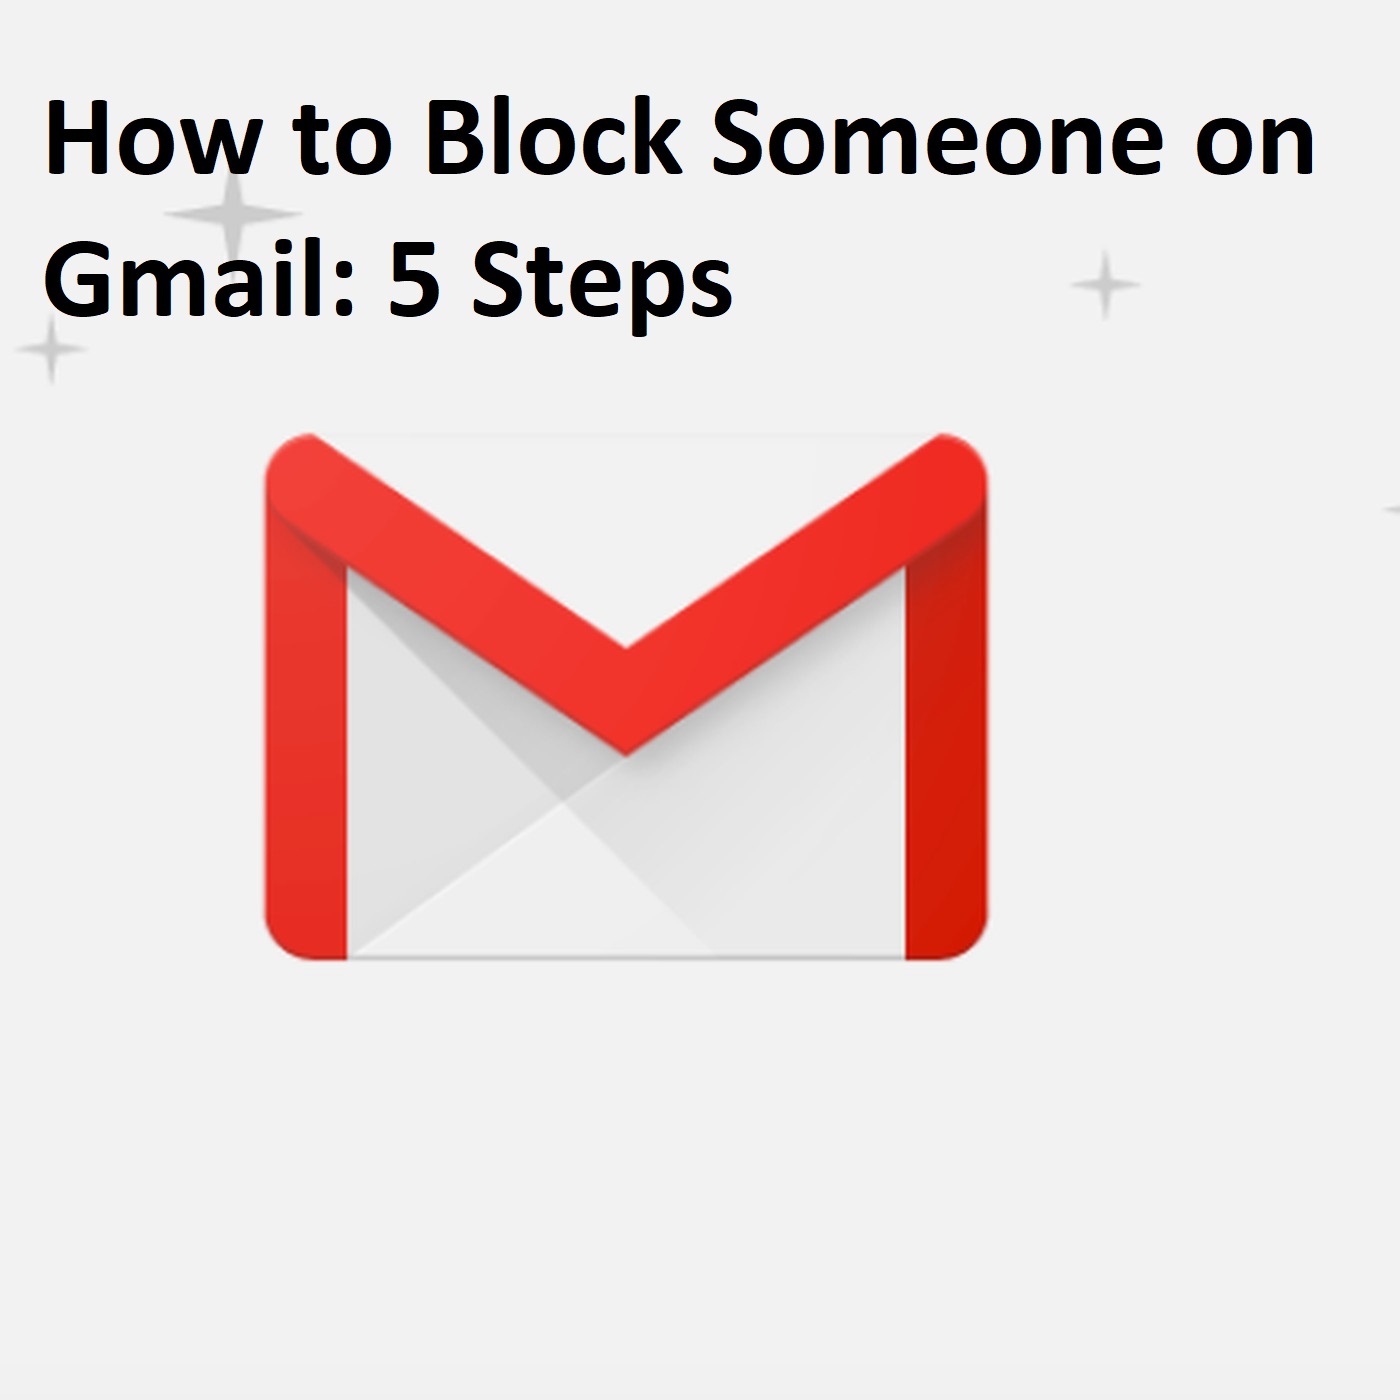 How to Block Someone on Gmail 5 Steps